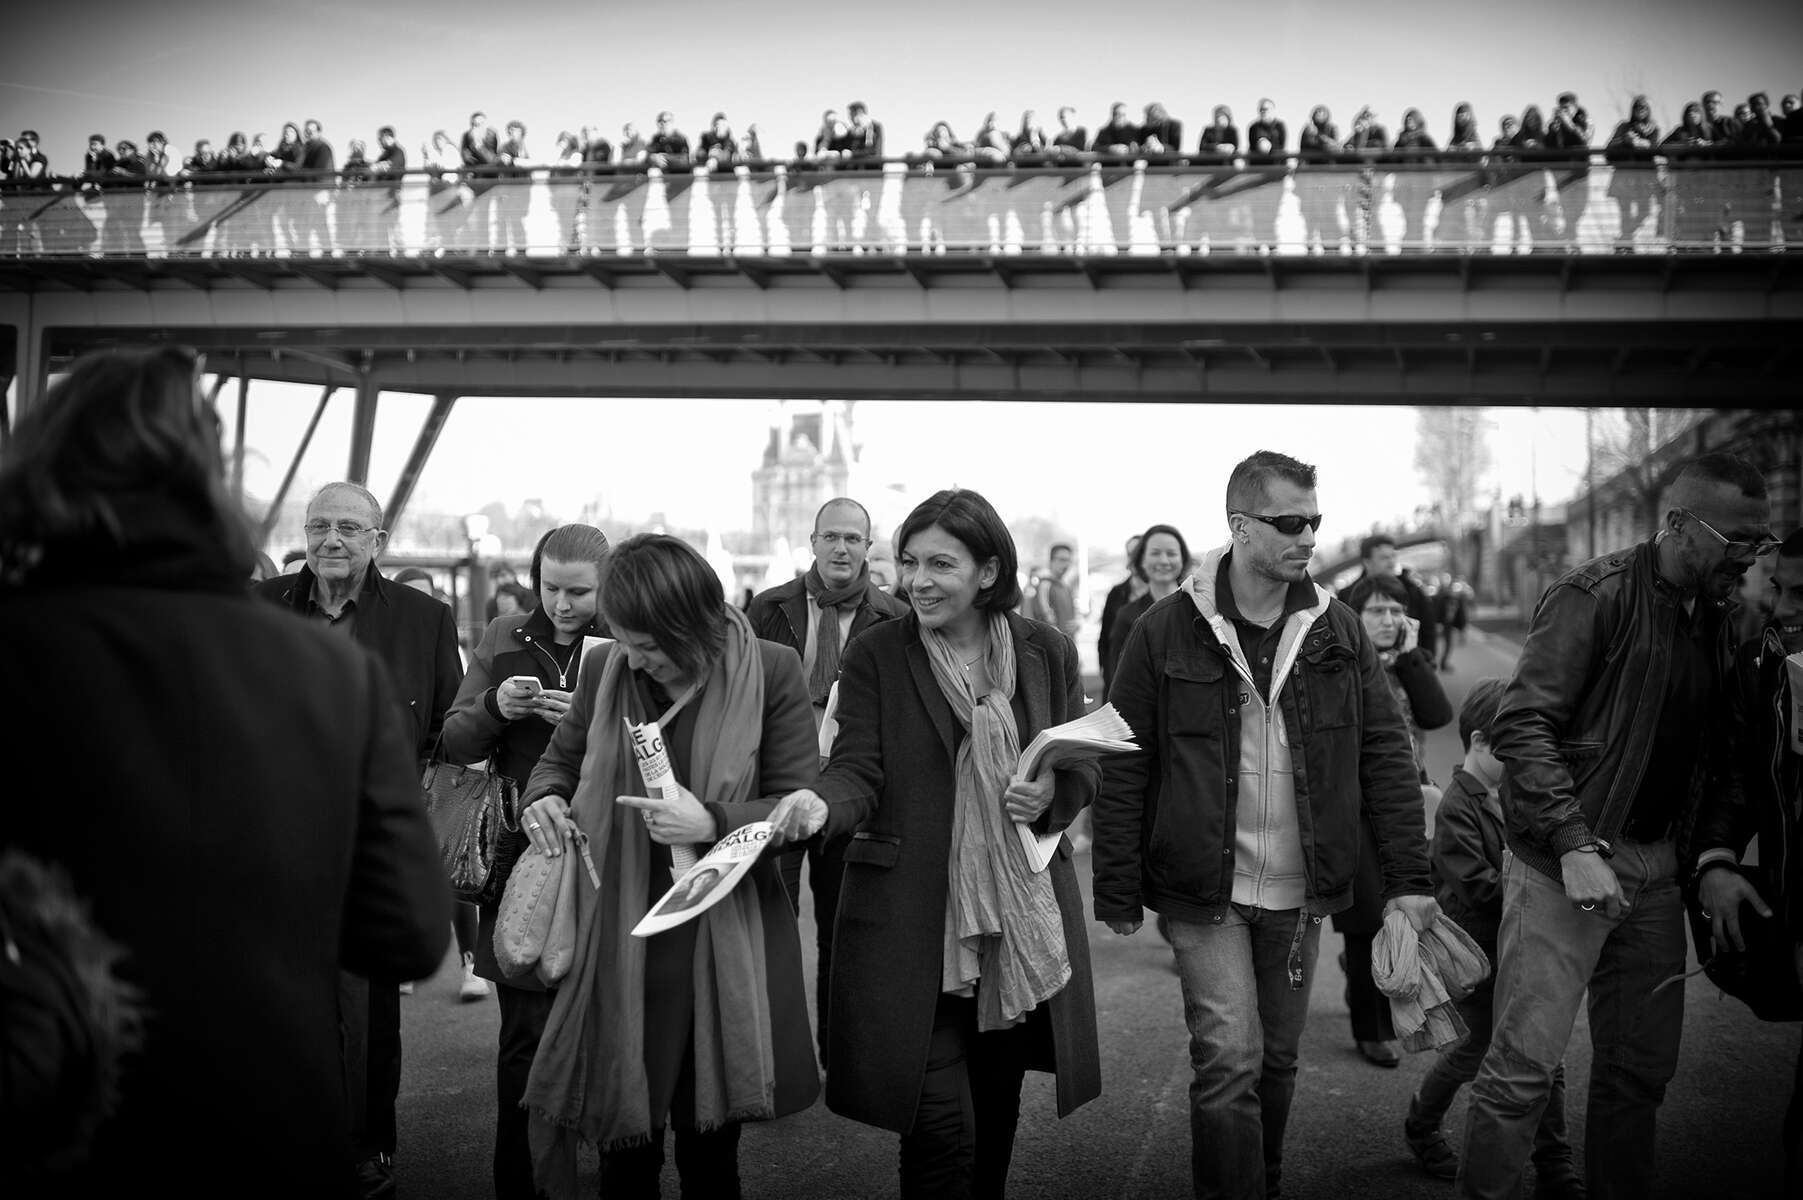 March 08, 2014.  PARIS, FRANCE-  Mayoral candidate Anne Hidalgo greets supporters along the Seine on International Women's Day.  For the first time in France's history, Paris will have a woman as a mayor - either Socialist Anne Hidalgo or Center-Right Nathalie Kosciusko-Morizet.  Photo by Scout Tufankjian